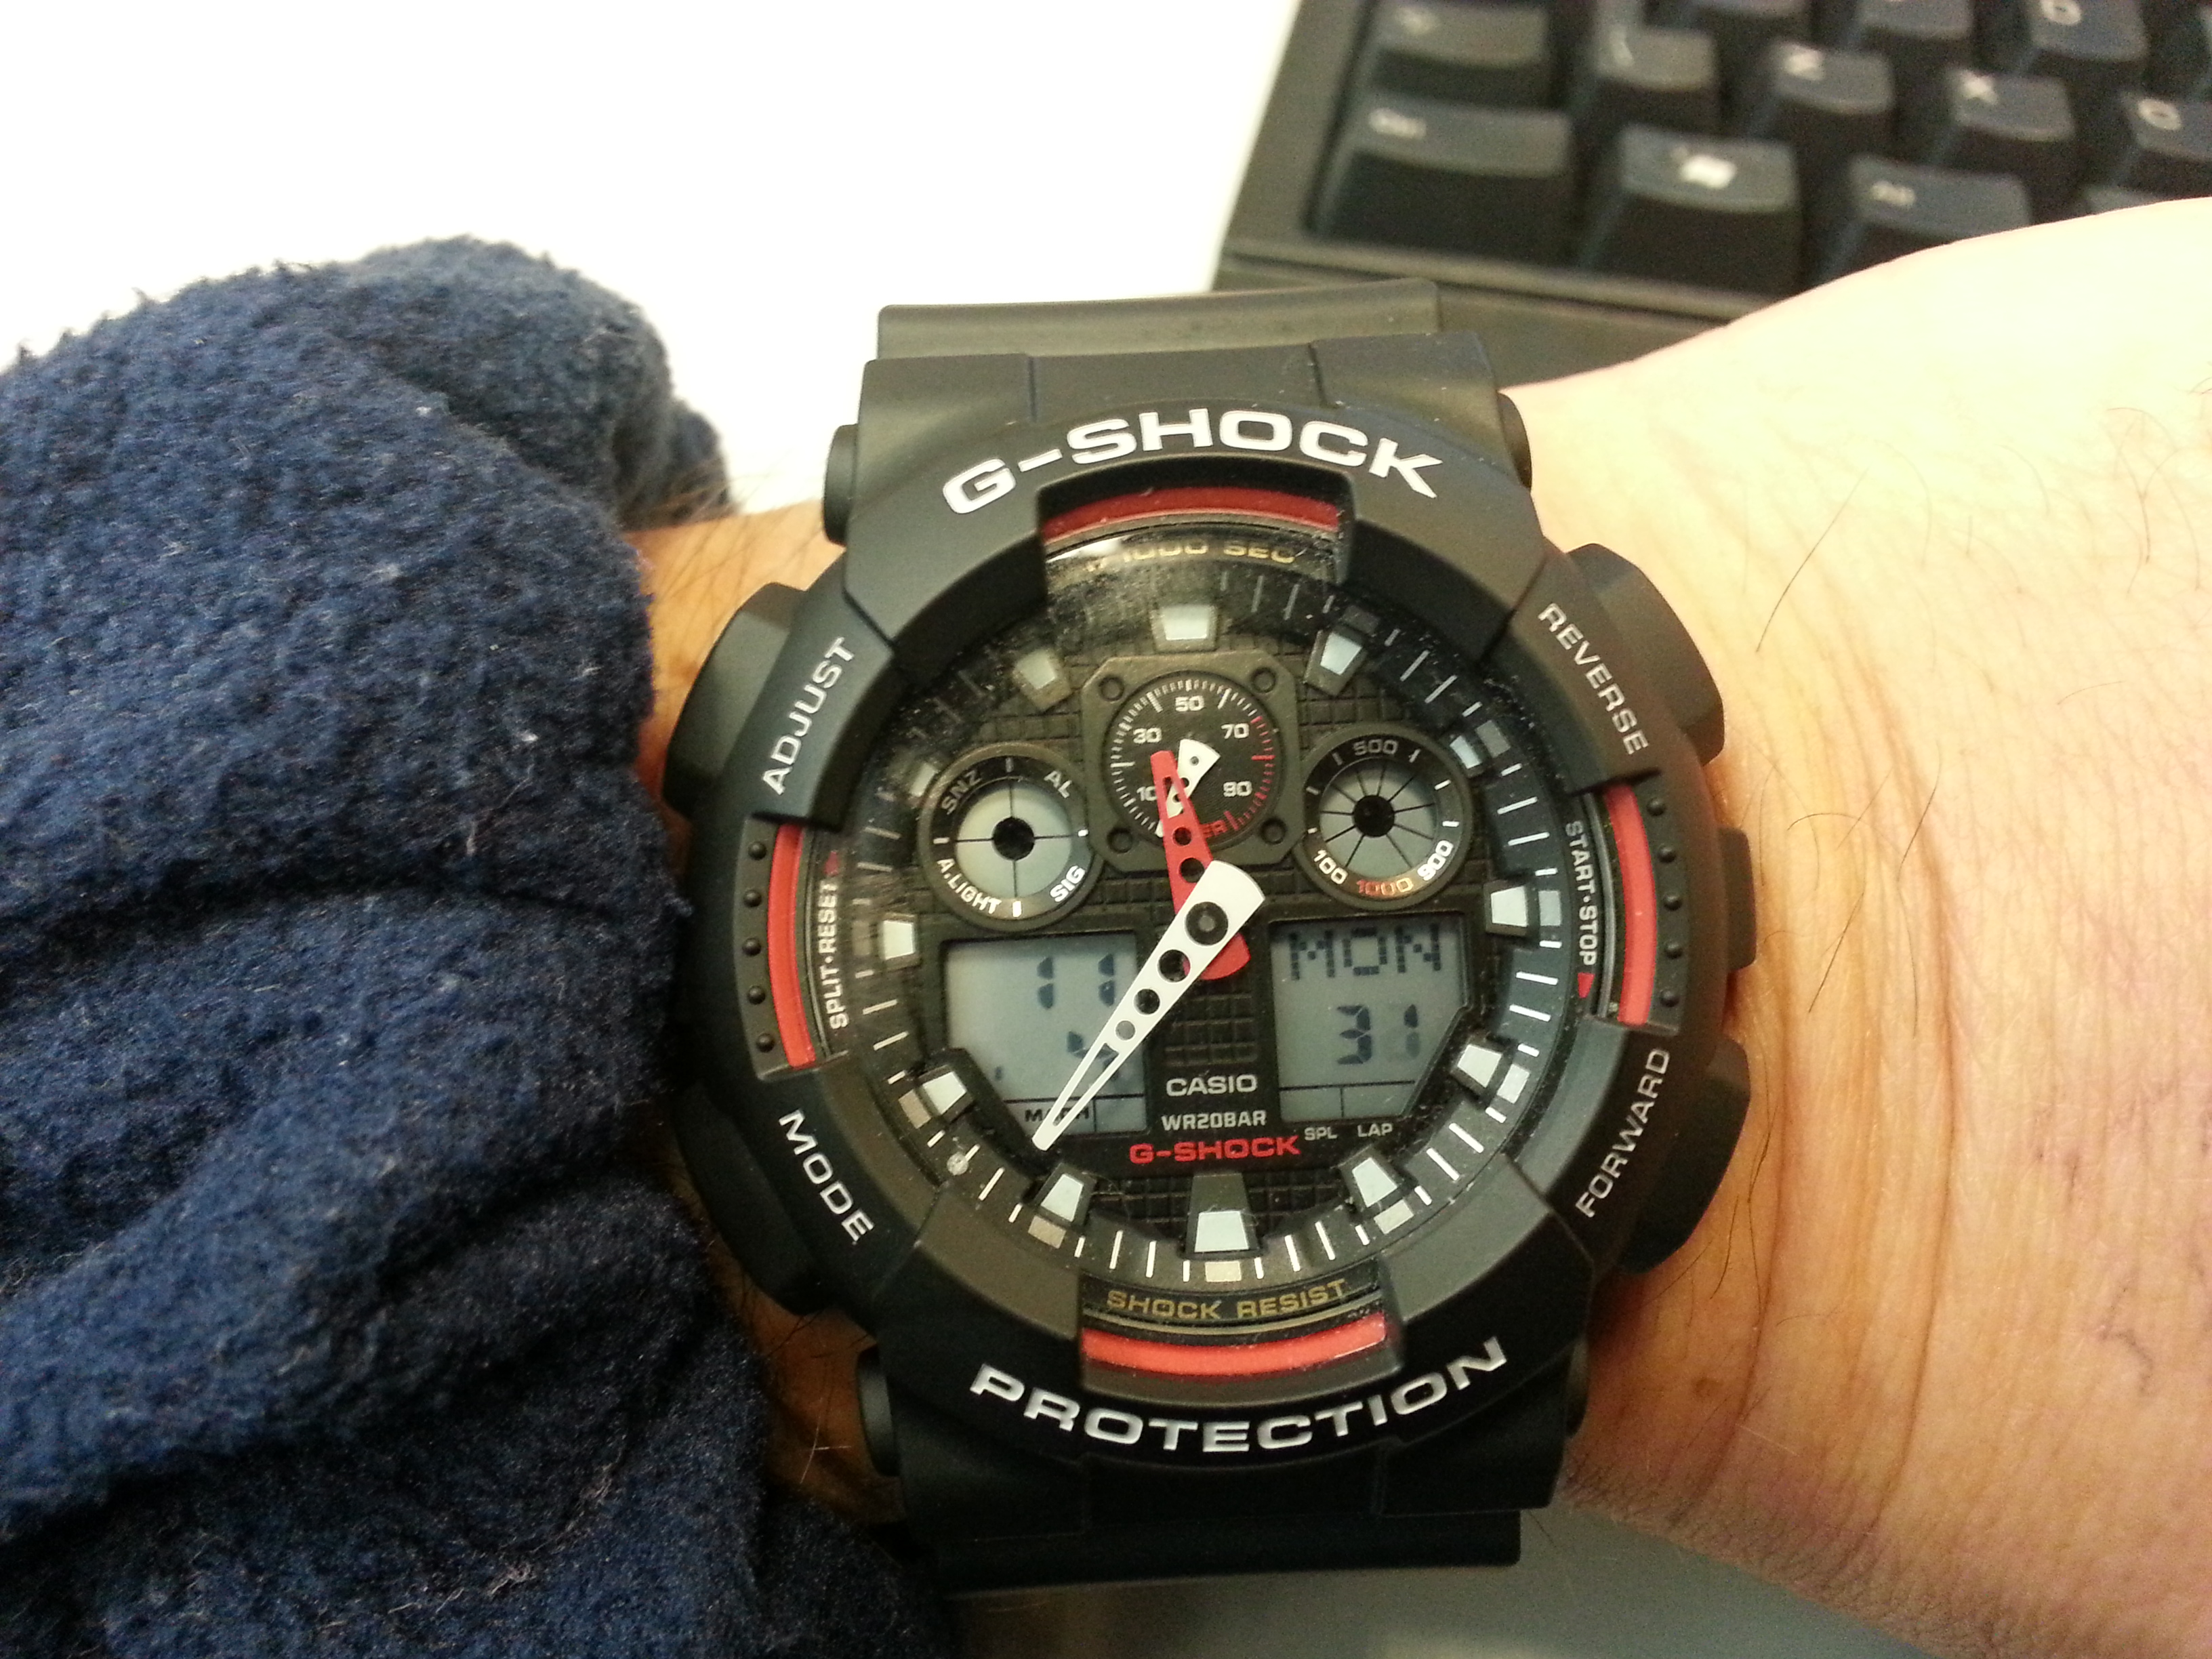 Gents Casio G Shock Alarm Chronograph Watch Ga 100 1a4er Both Have Been Verified I Like The Bmtb A Lot However Just Generally Pleased With Only Slight Problem Is That Hour Hand Not Easy To See At Night Even Illumination Light Pressed